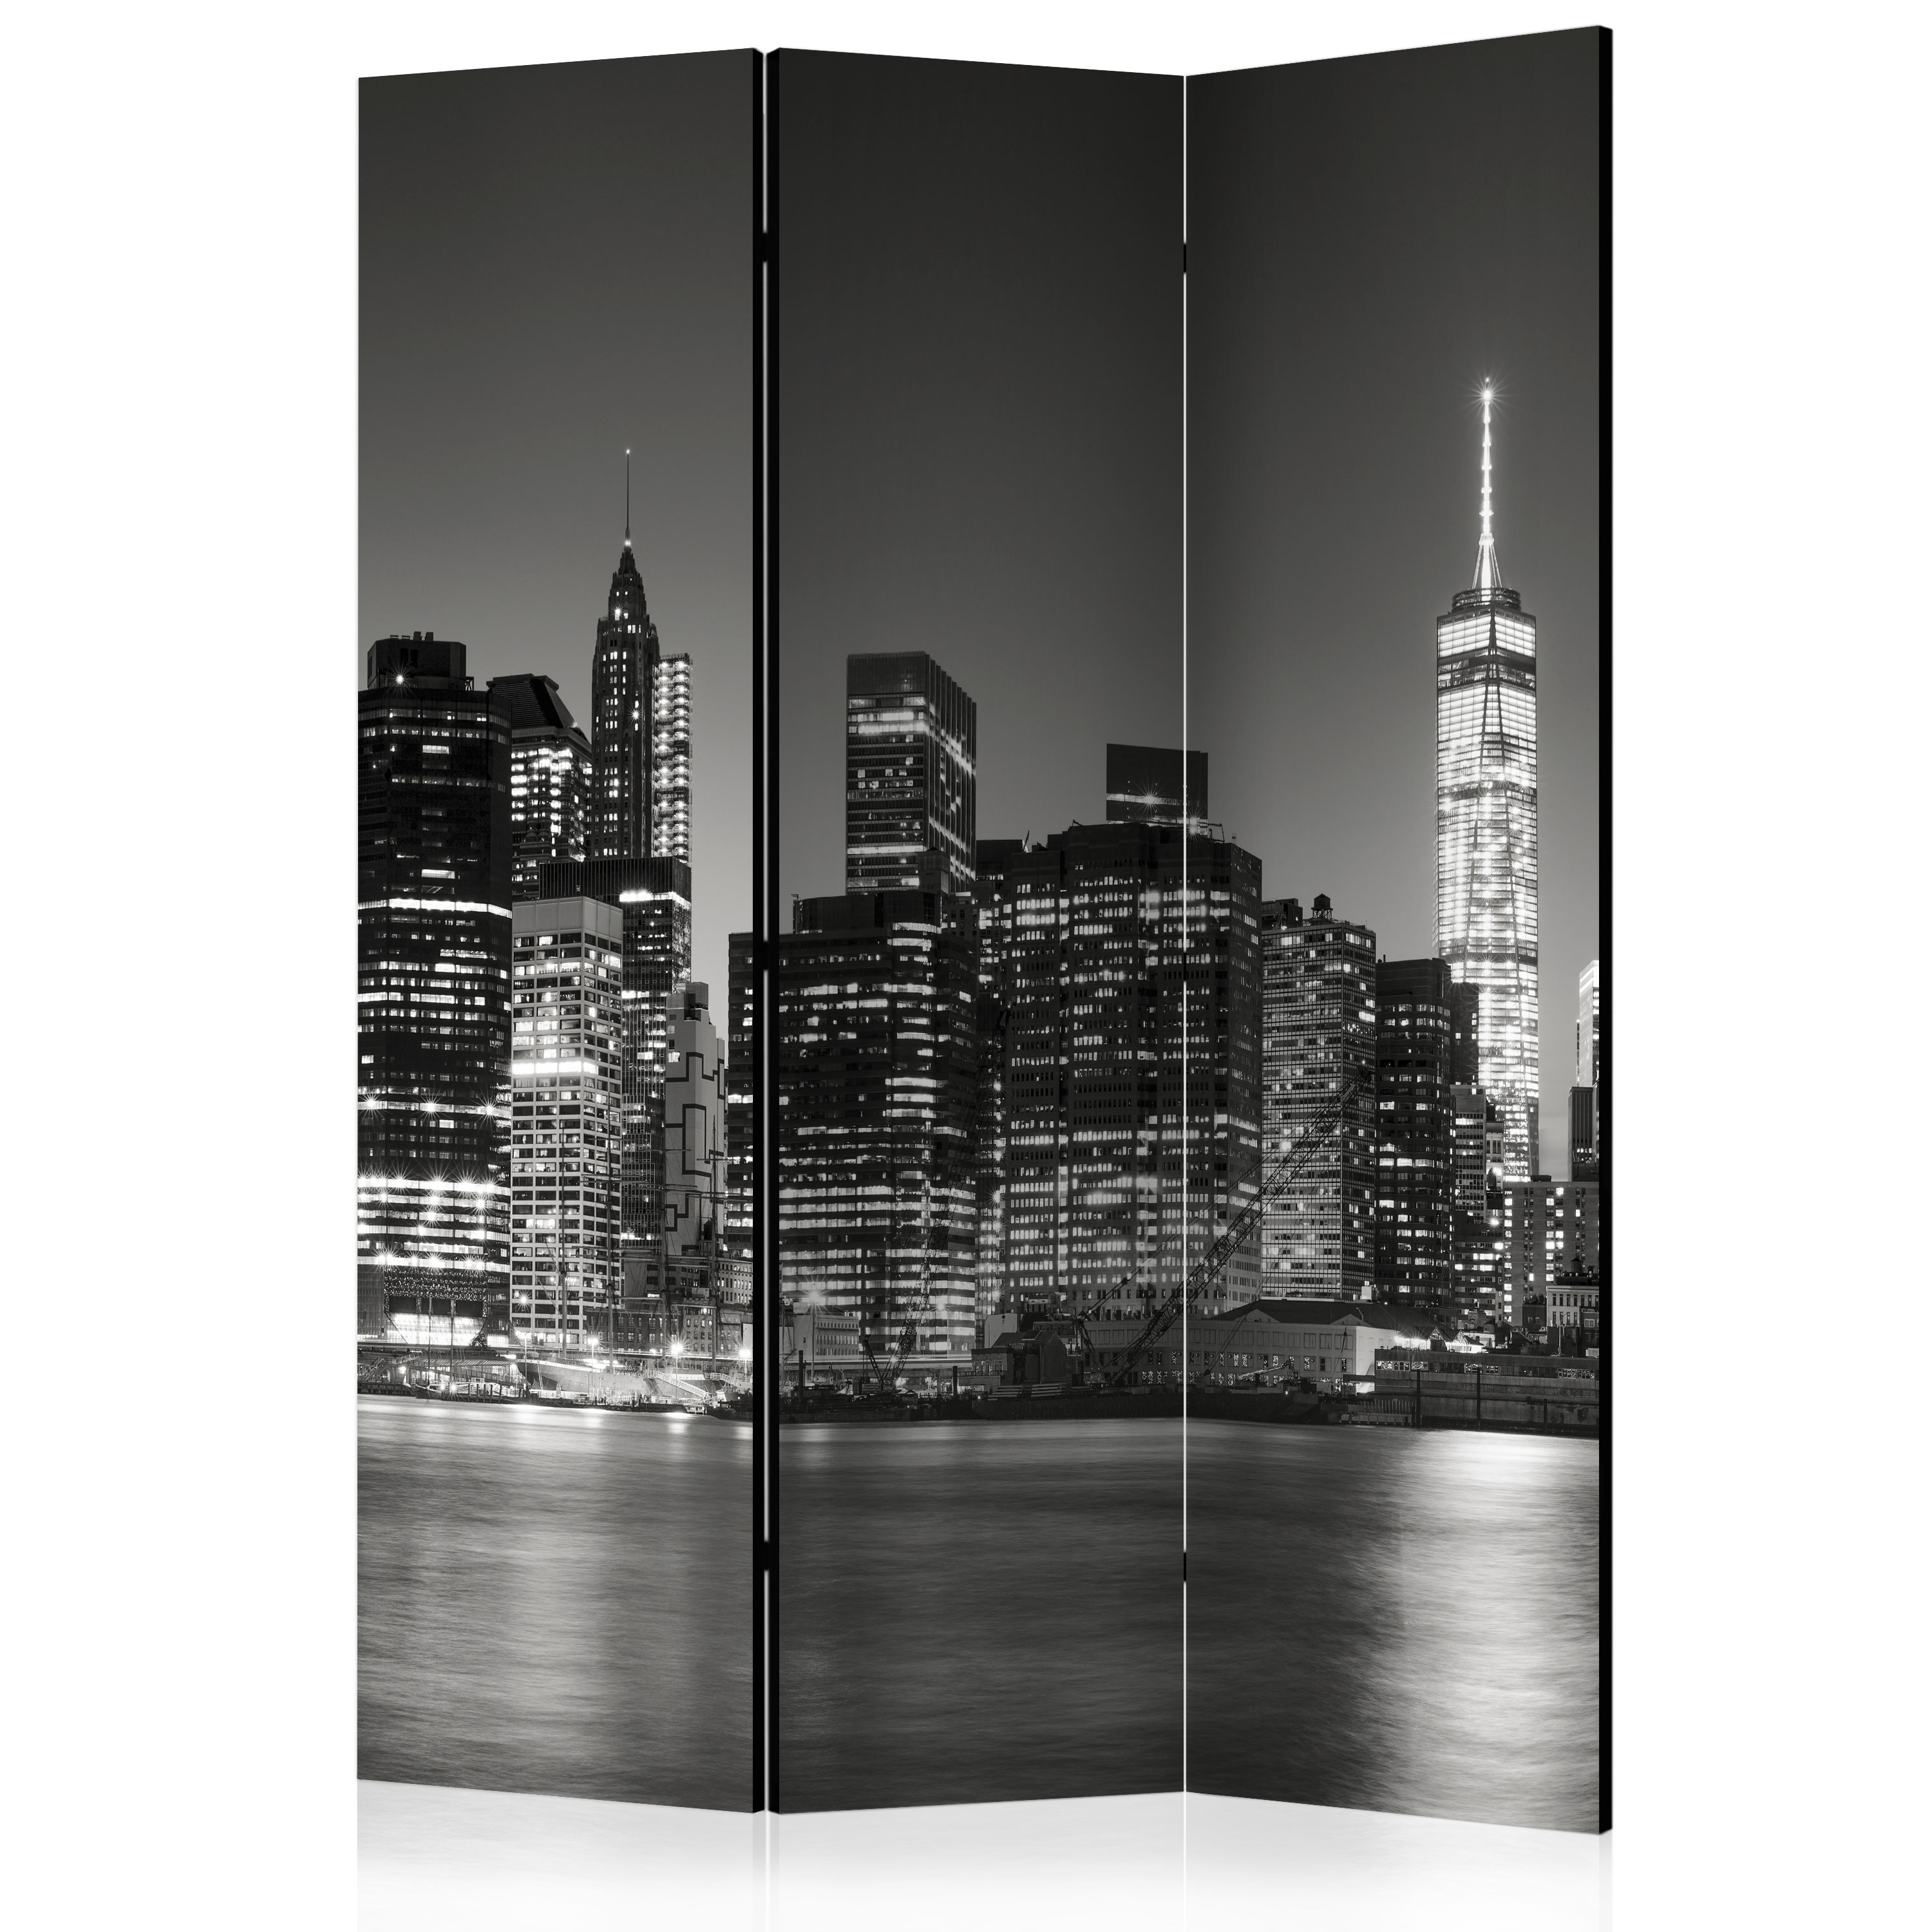 DECORATIVE PHOTO FOLDING SCREEN WALL ROOM DIVIDER NEW YORK 2 SIZES